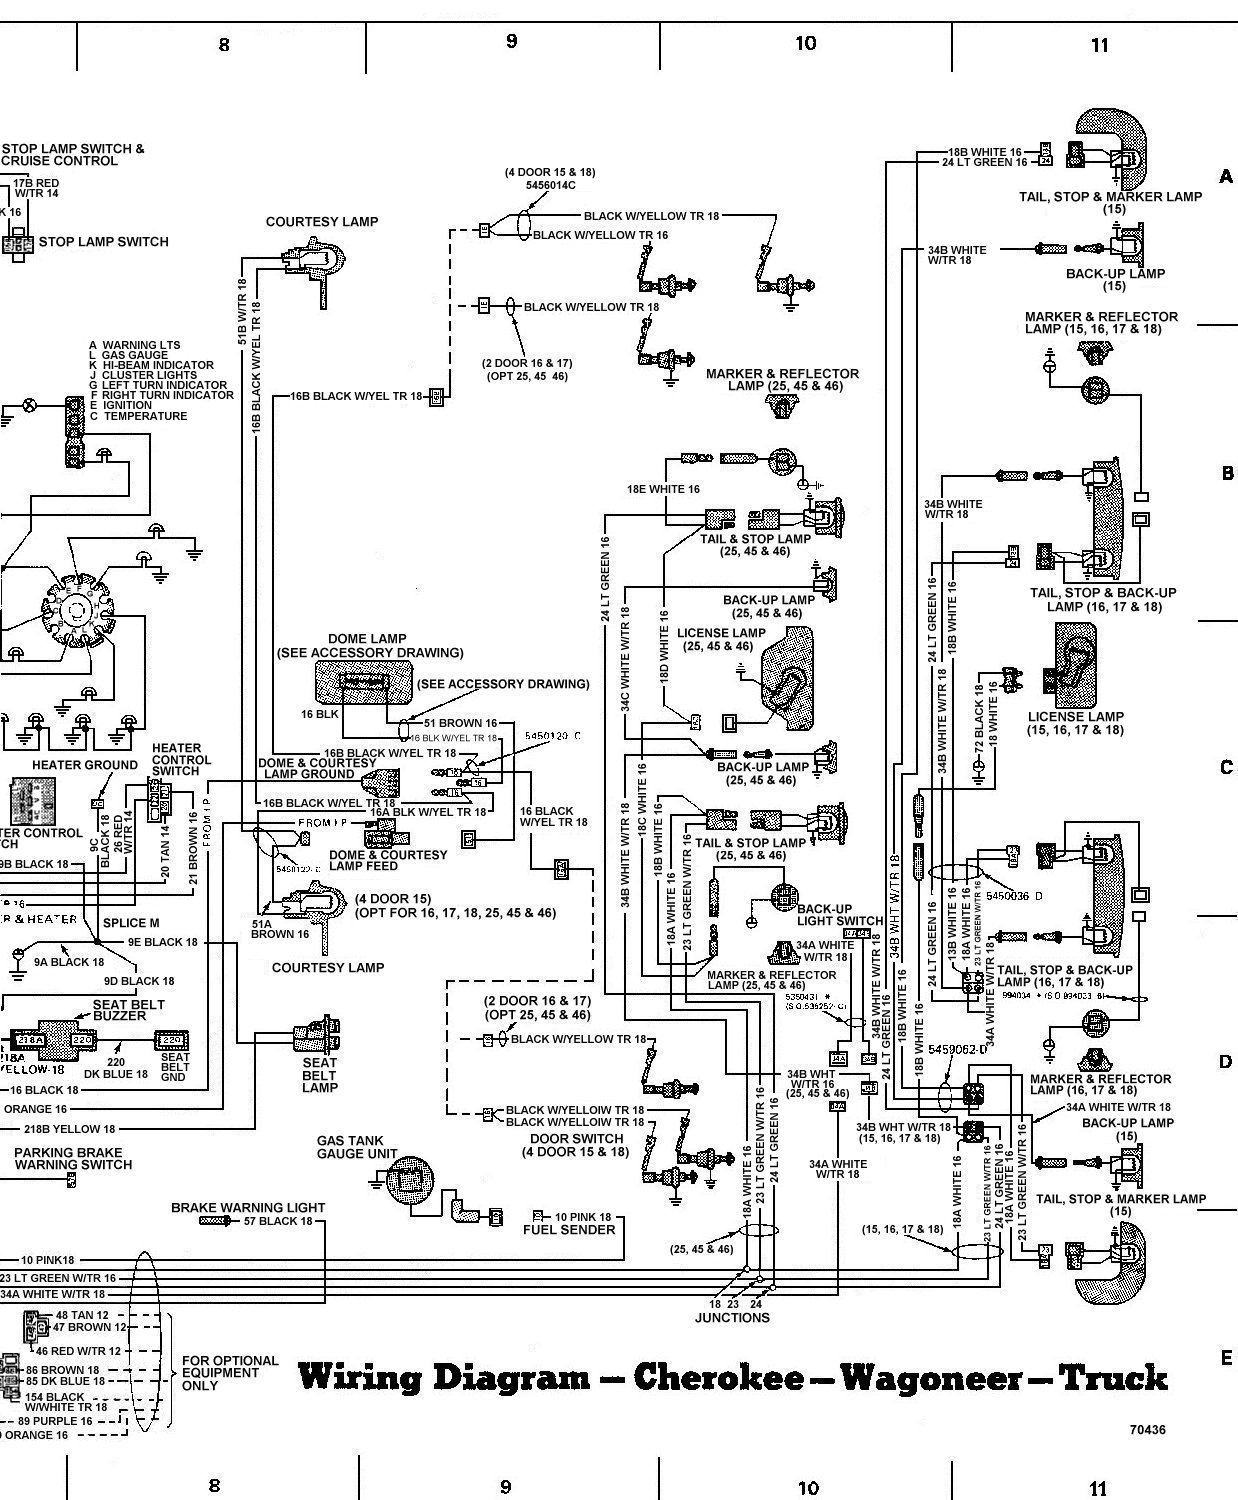 83 jeep grand cherokee wiring diagram wiring diagram third level